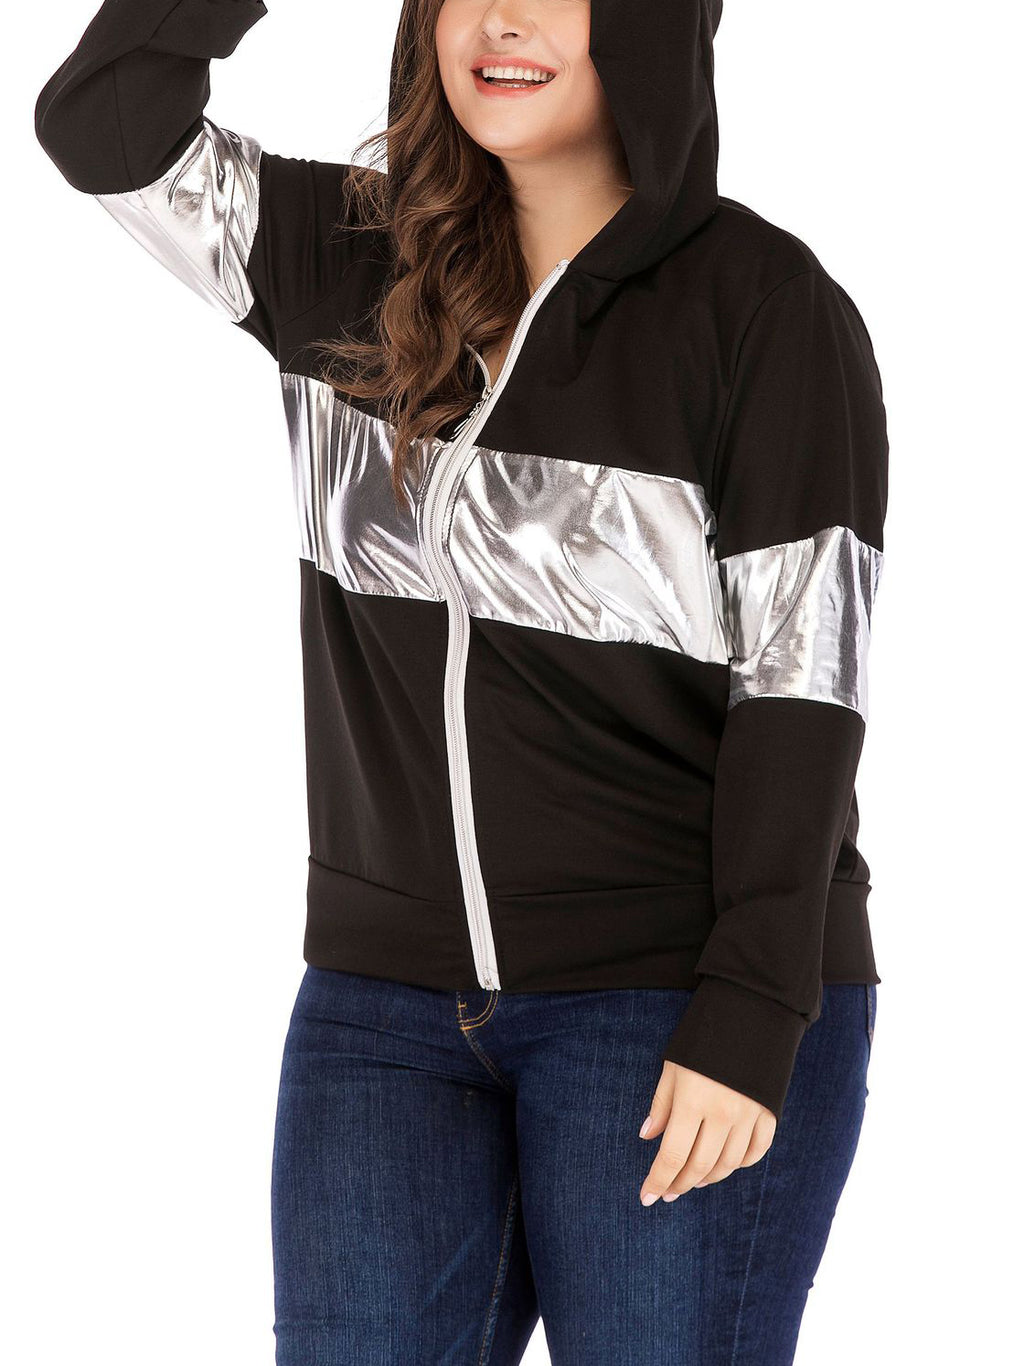 Cute Ear Hooded Women's Large Size Coat